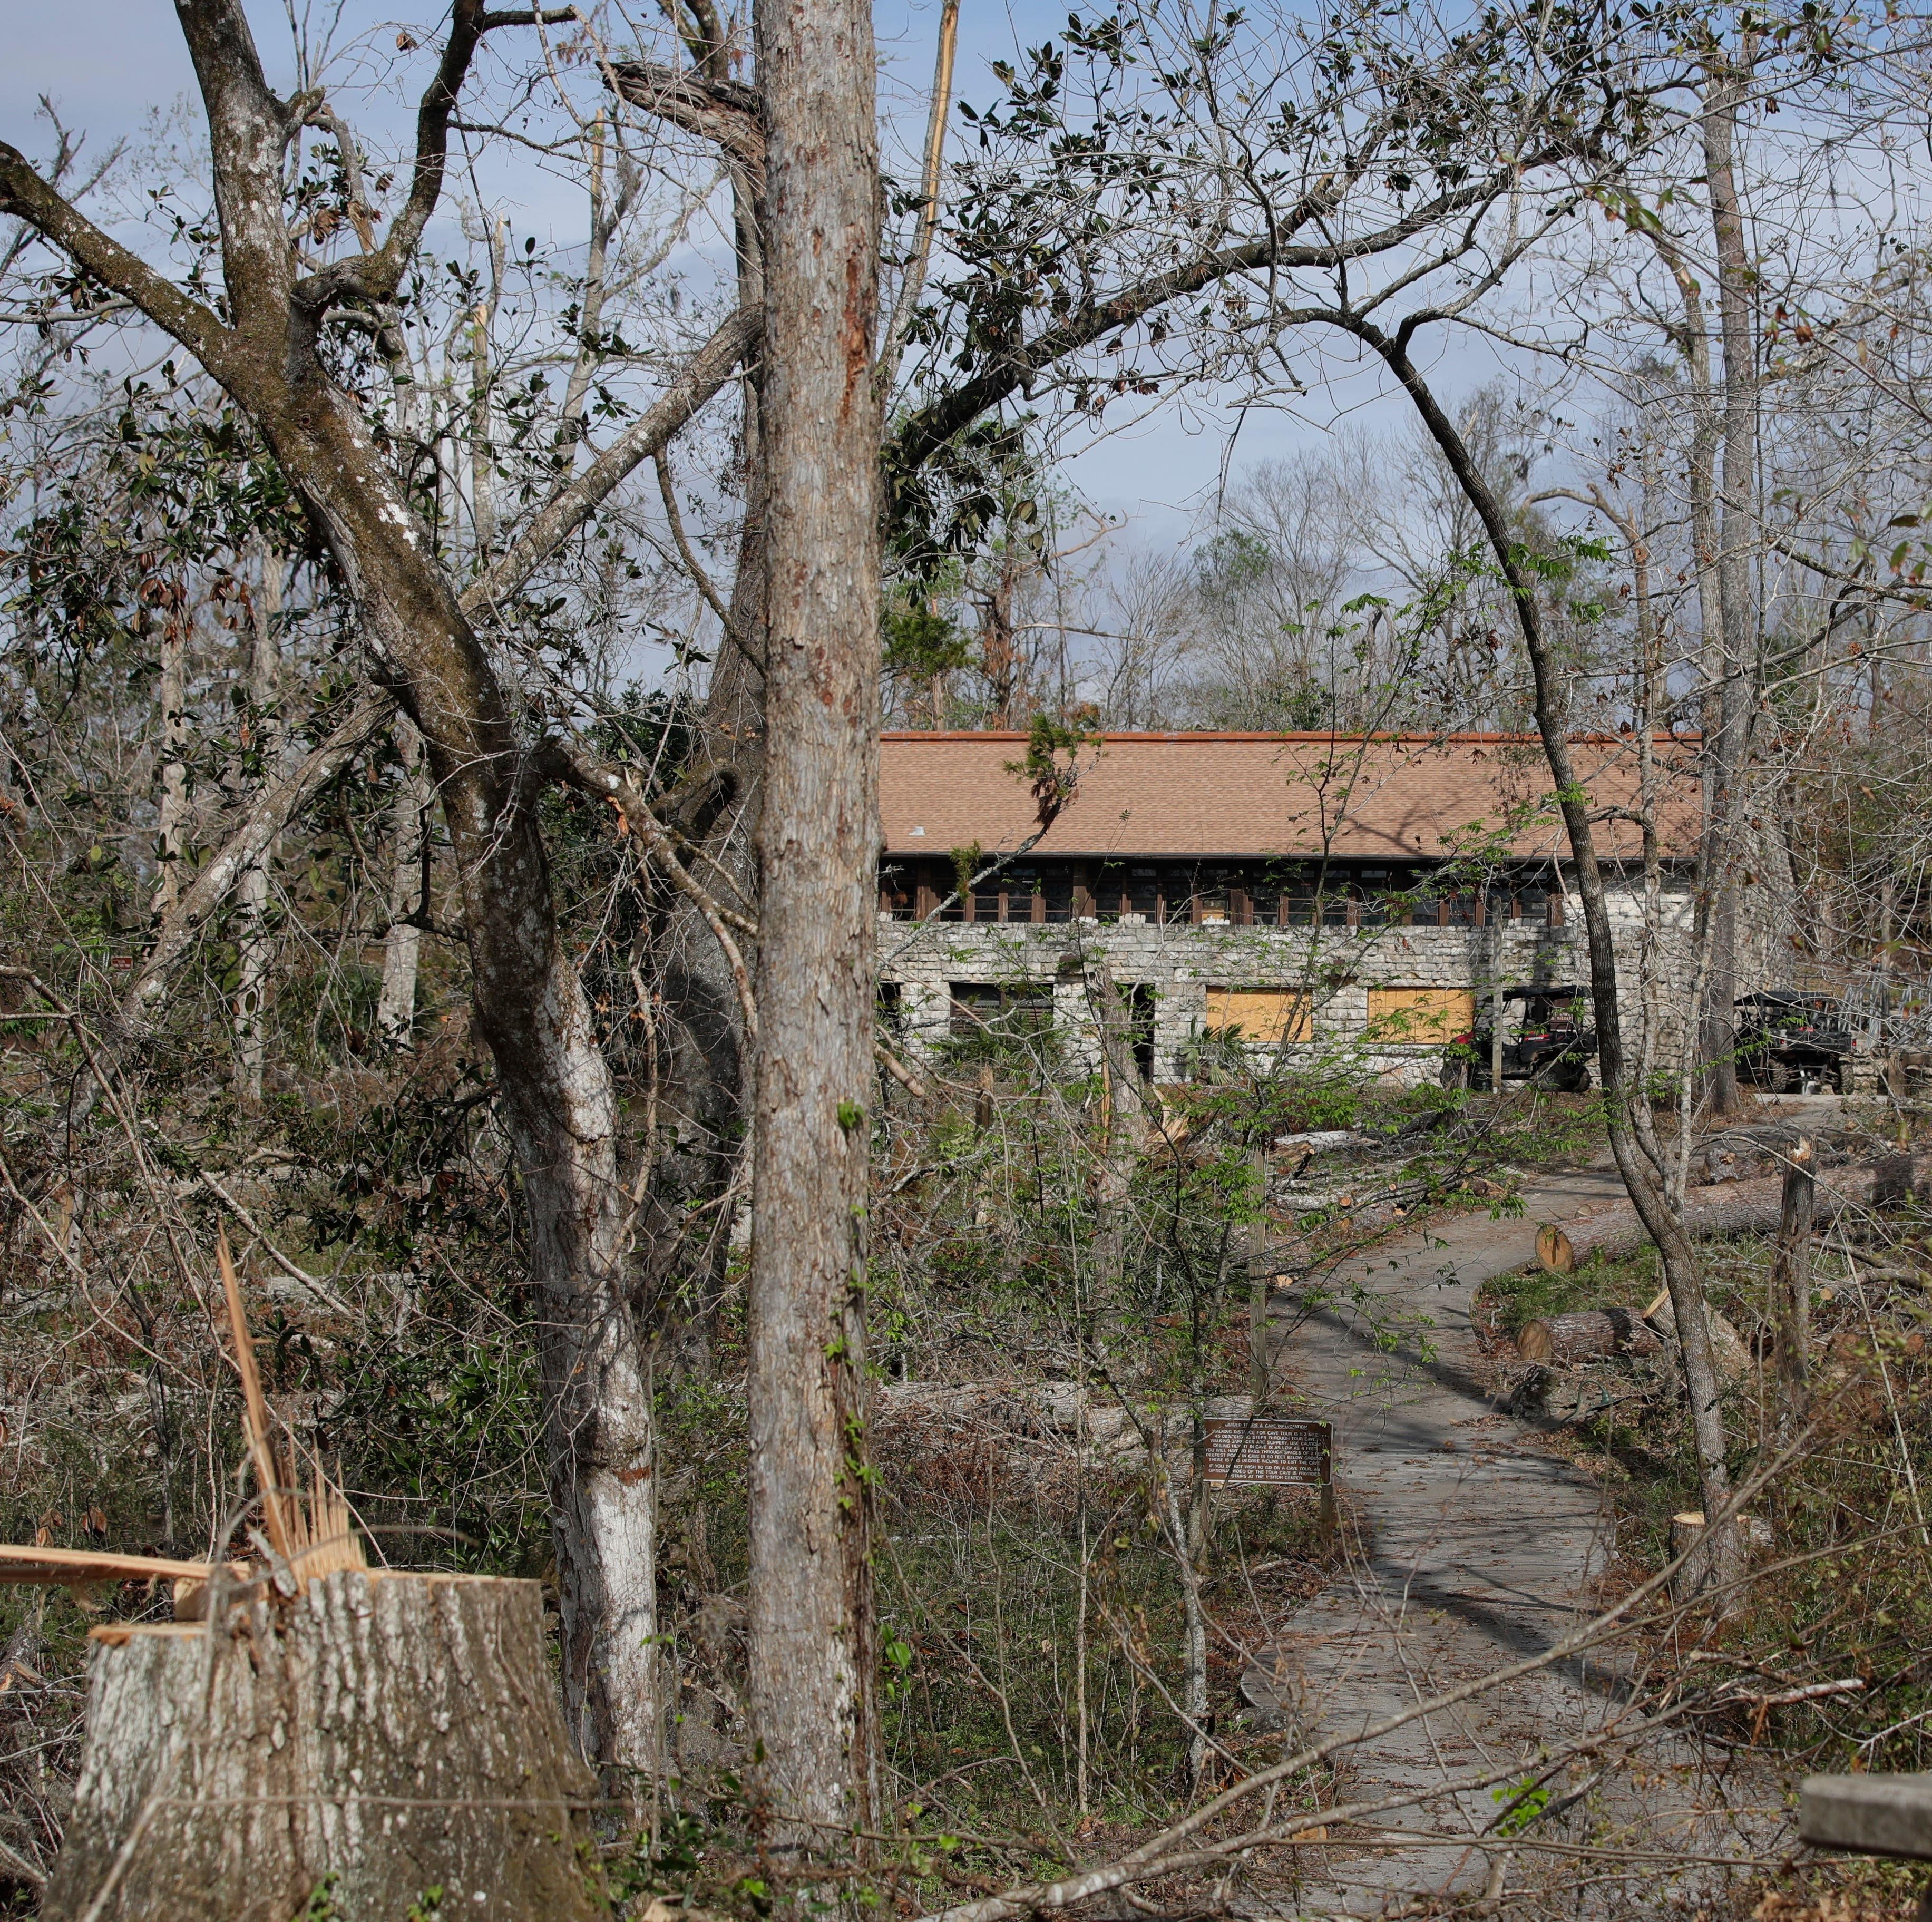 Hurricane Michael toppled 80 percent of its trees. Now Florida Caverns State Park digs out